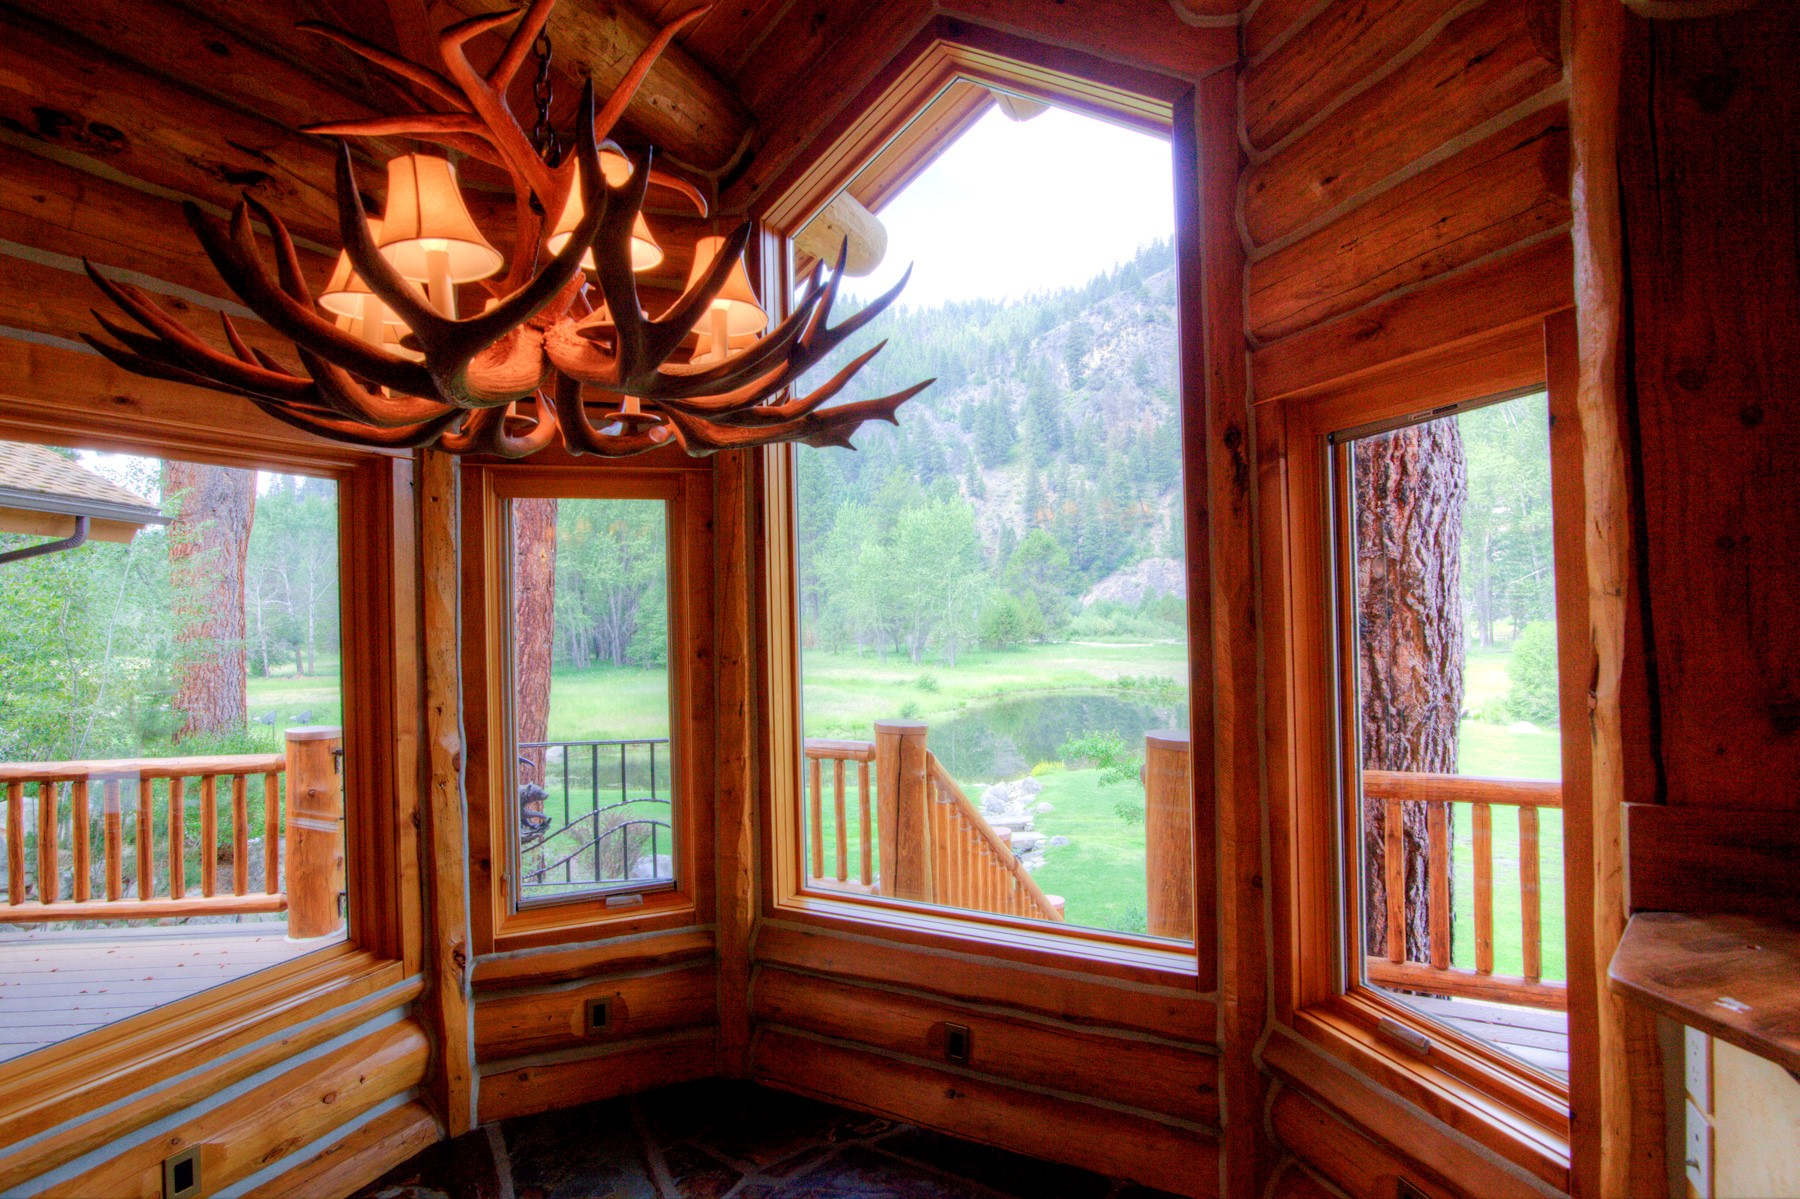 Additional photo for property listing at 7229 West Fork Rd , Darby, MT 59829 7229  West Fork Rd Darby, Montana 59829 United States